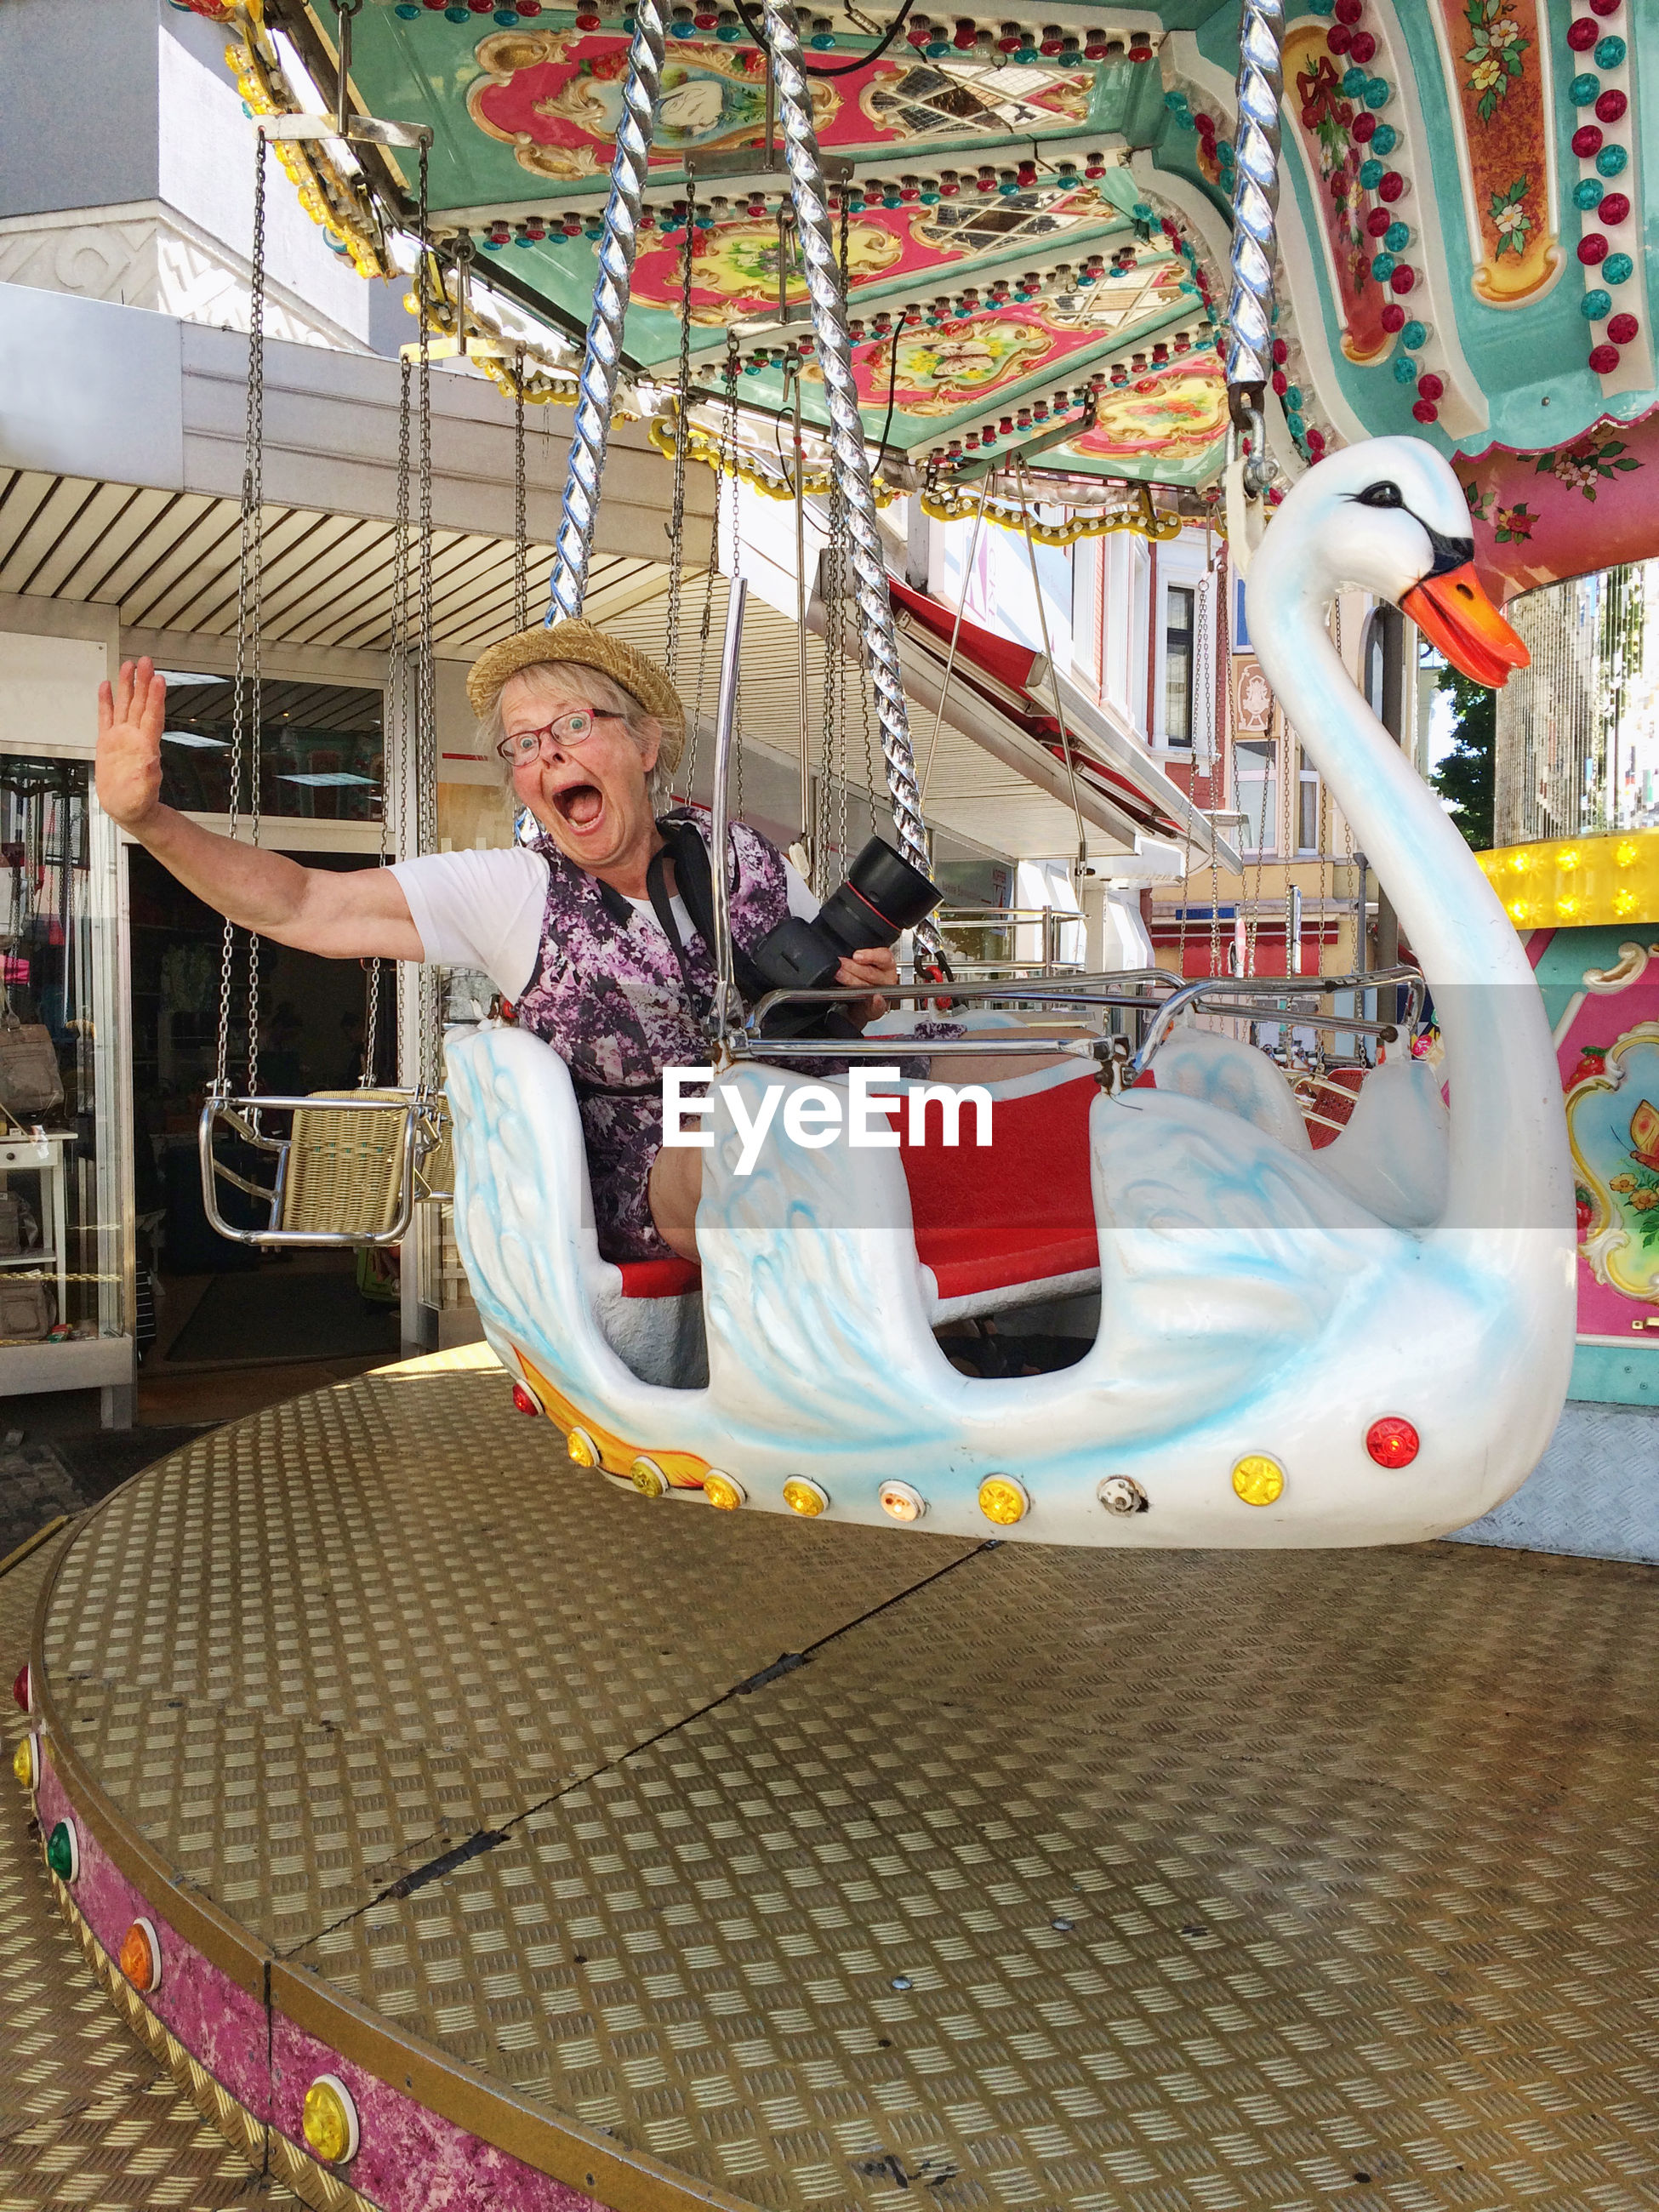 amusement park, amusement park ride, leisure activity, carousel, enjoyment, arts culture and entertainment, childhood, fun, carousel horses, lifestyles, smiling, happiness, looking at camera, full length, elementary age, girls, merry-go-round, real people, playing, day, outdoors, one person, people